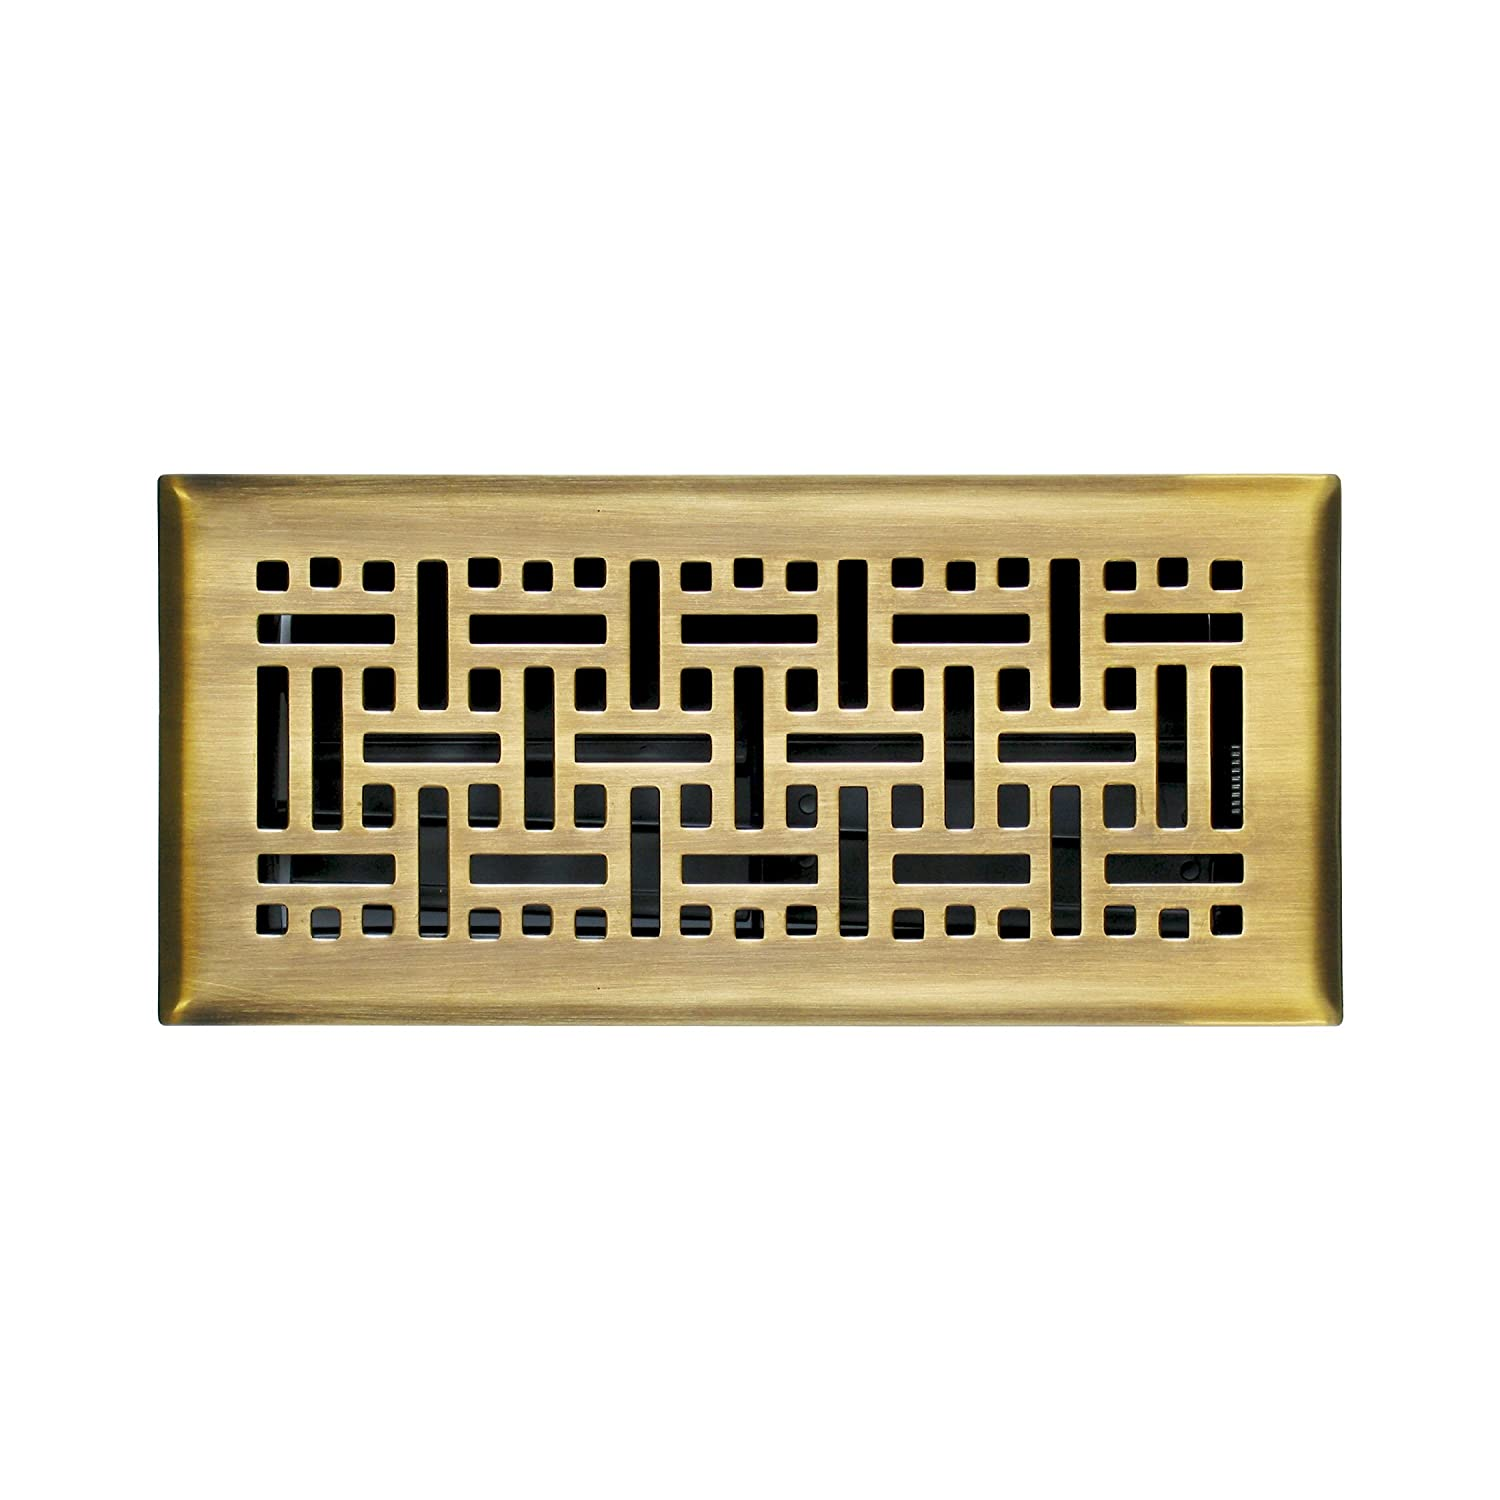 Accord AMFRPBB412 Floor Register with Wicker Design, 4-Inch x 12-Inch(Duct Opening Measurements), Polished Brass